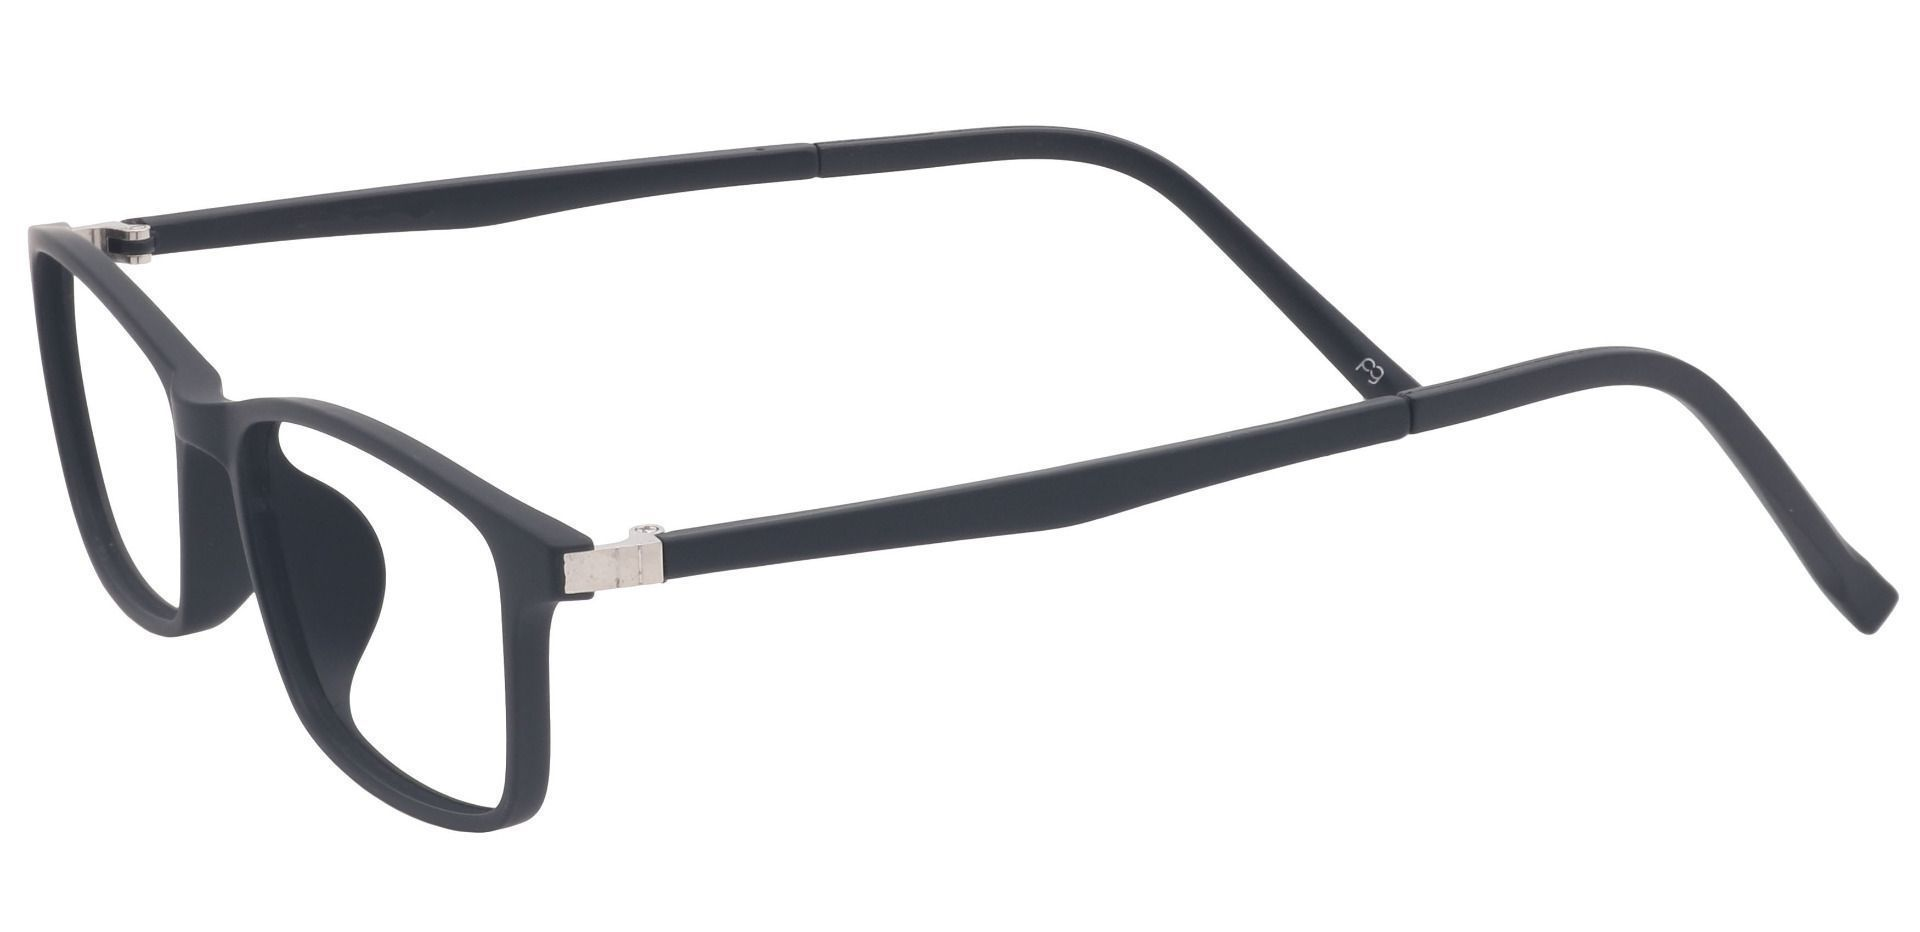 Ola Oval Prescription Glasses - Black